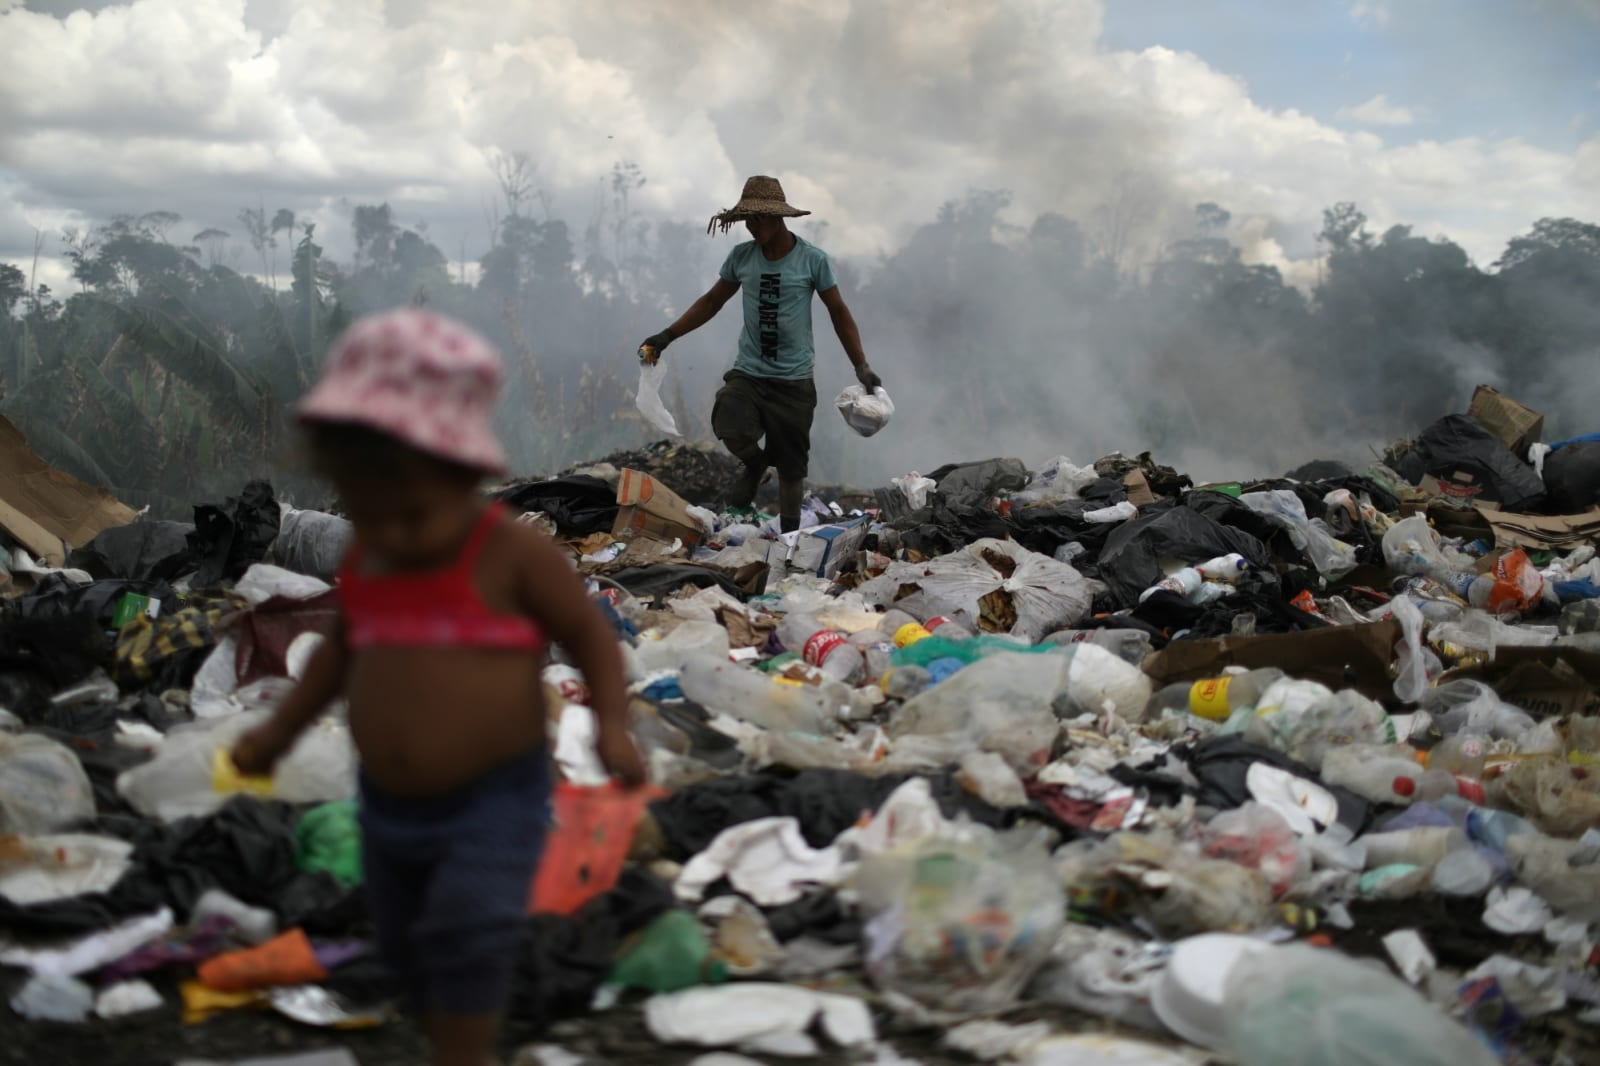 Venezuelan Antony Calzadilla is seen at a garbage dump as his child waits for him, in the border city of Pacaraima, Brazil April 13, 2019. REUTERS/Pilar Olivares